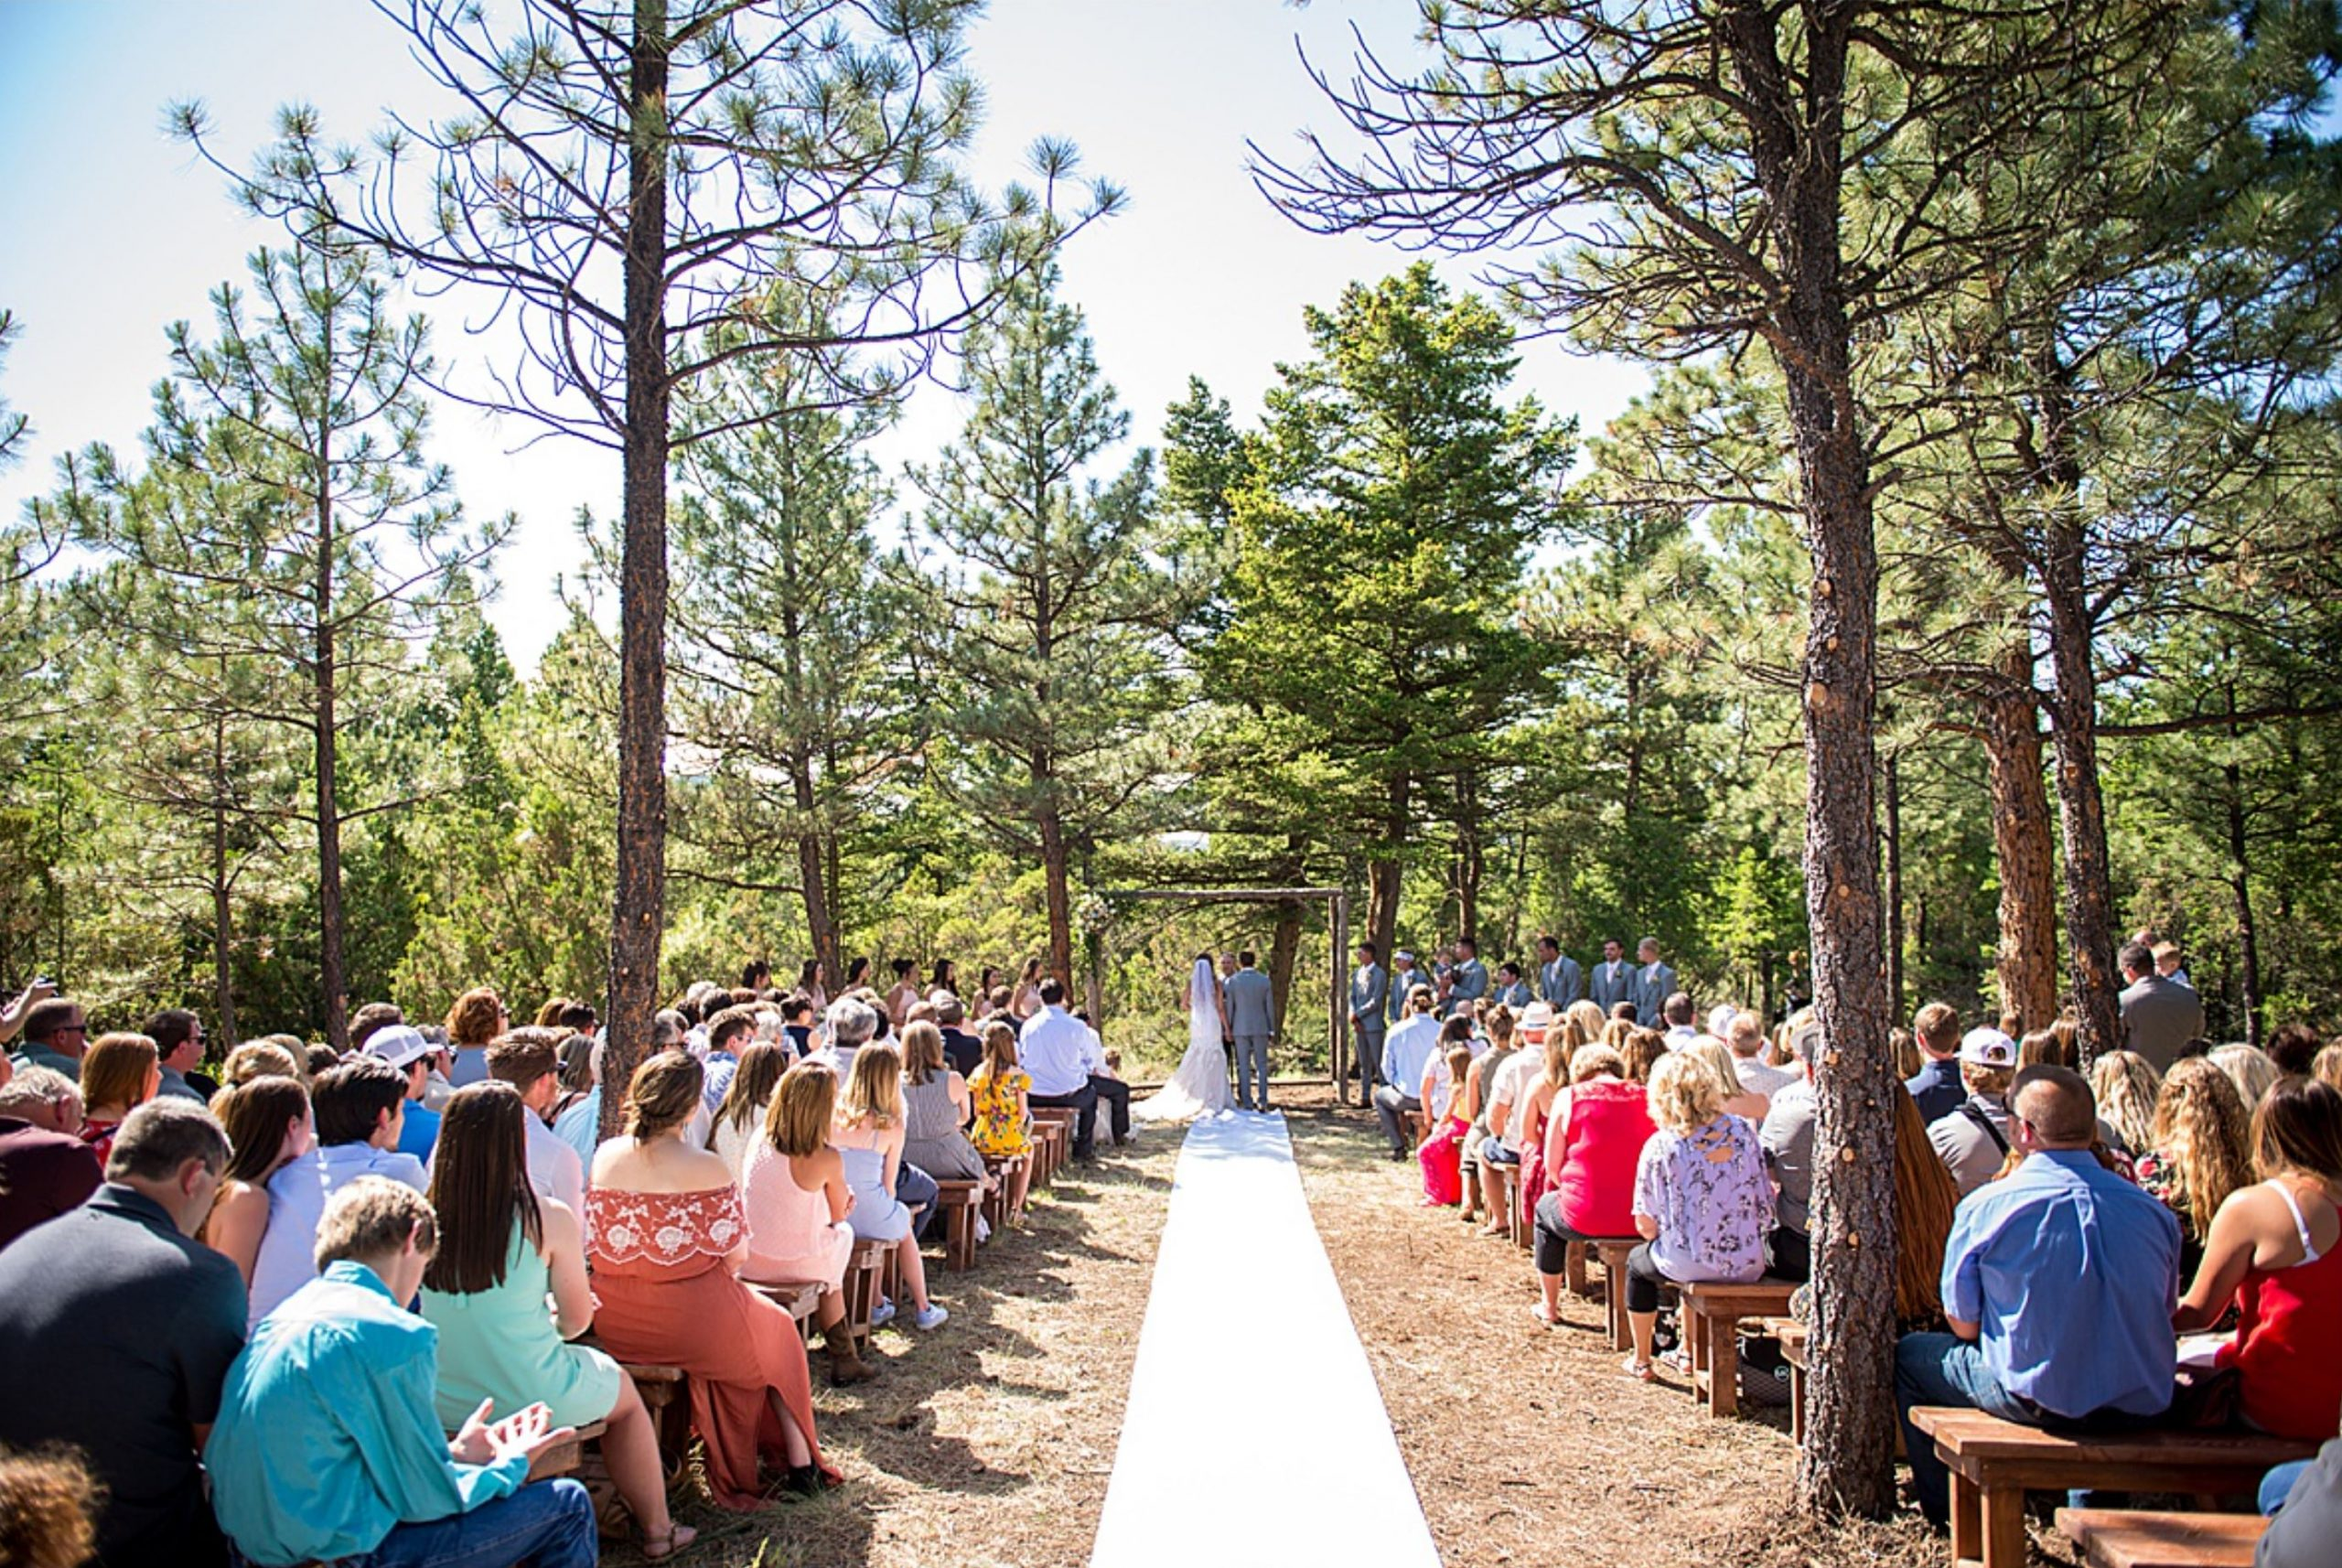 A wedding couple is getting married at the Summer Star Ranch in Montana.